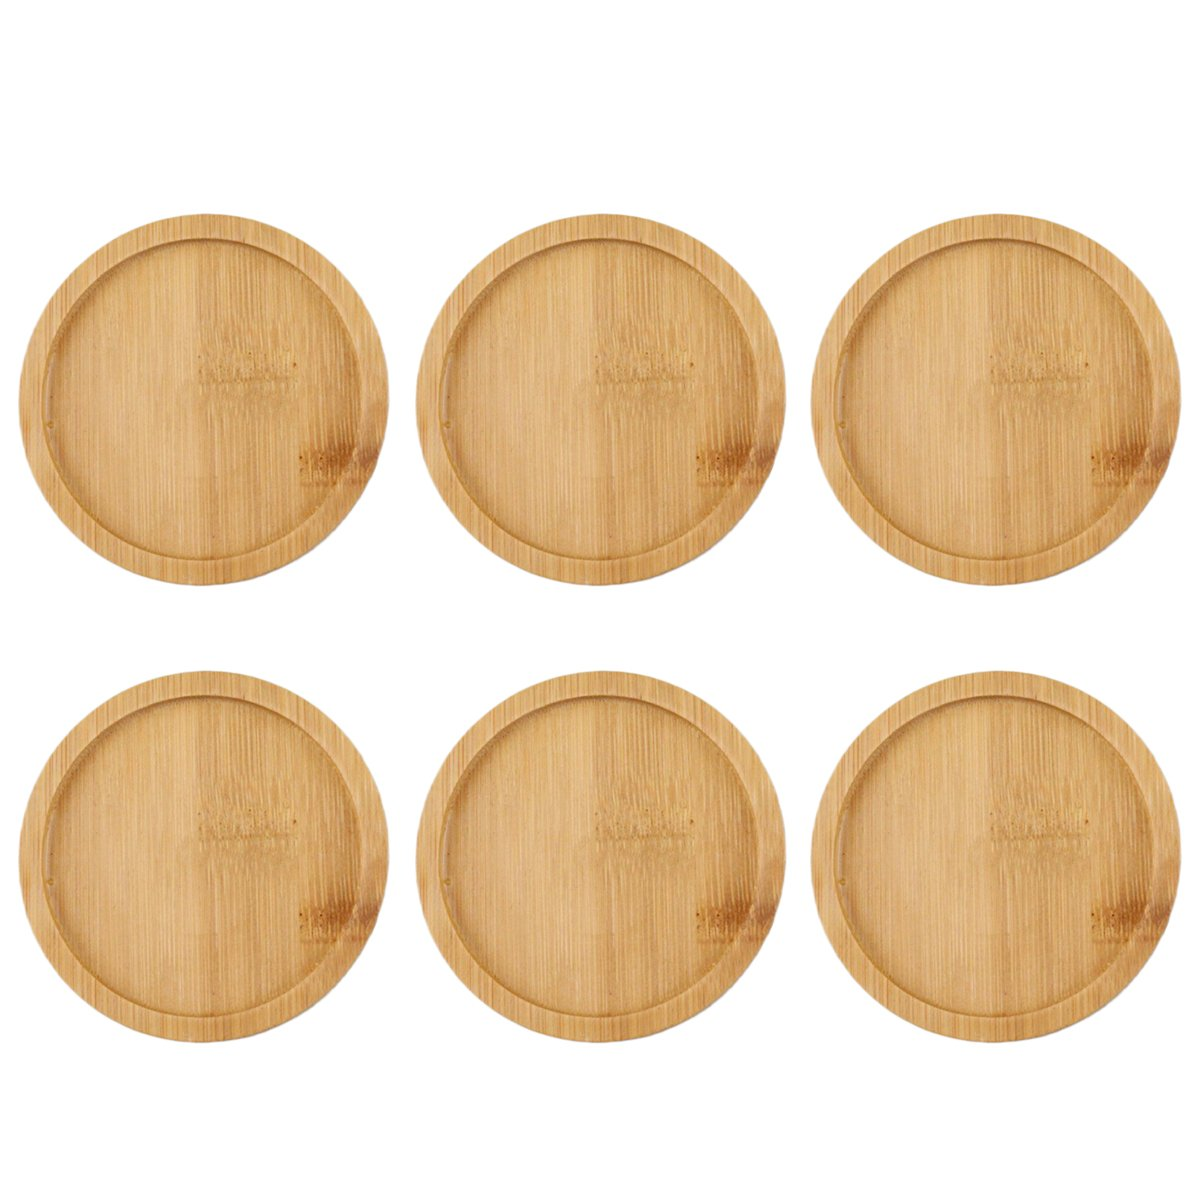 BESTOMZ 6pcs Bamboo Round Plant Saucer Flower Pot Tray Bonsai Succulent for Indoor Outdoor Plants 9.5x9.5cm by BESTOMZ